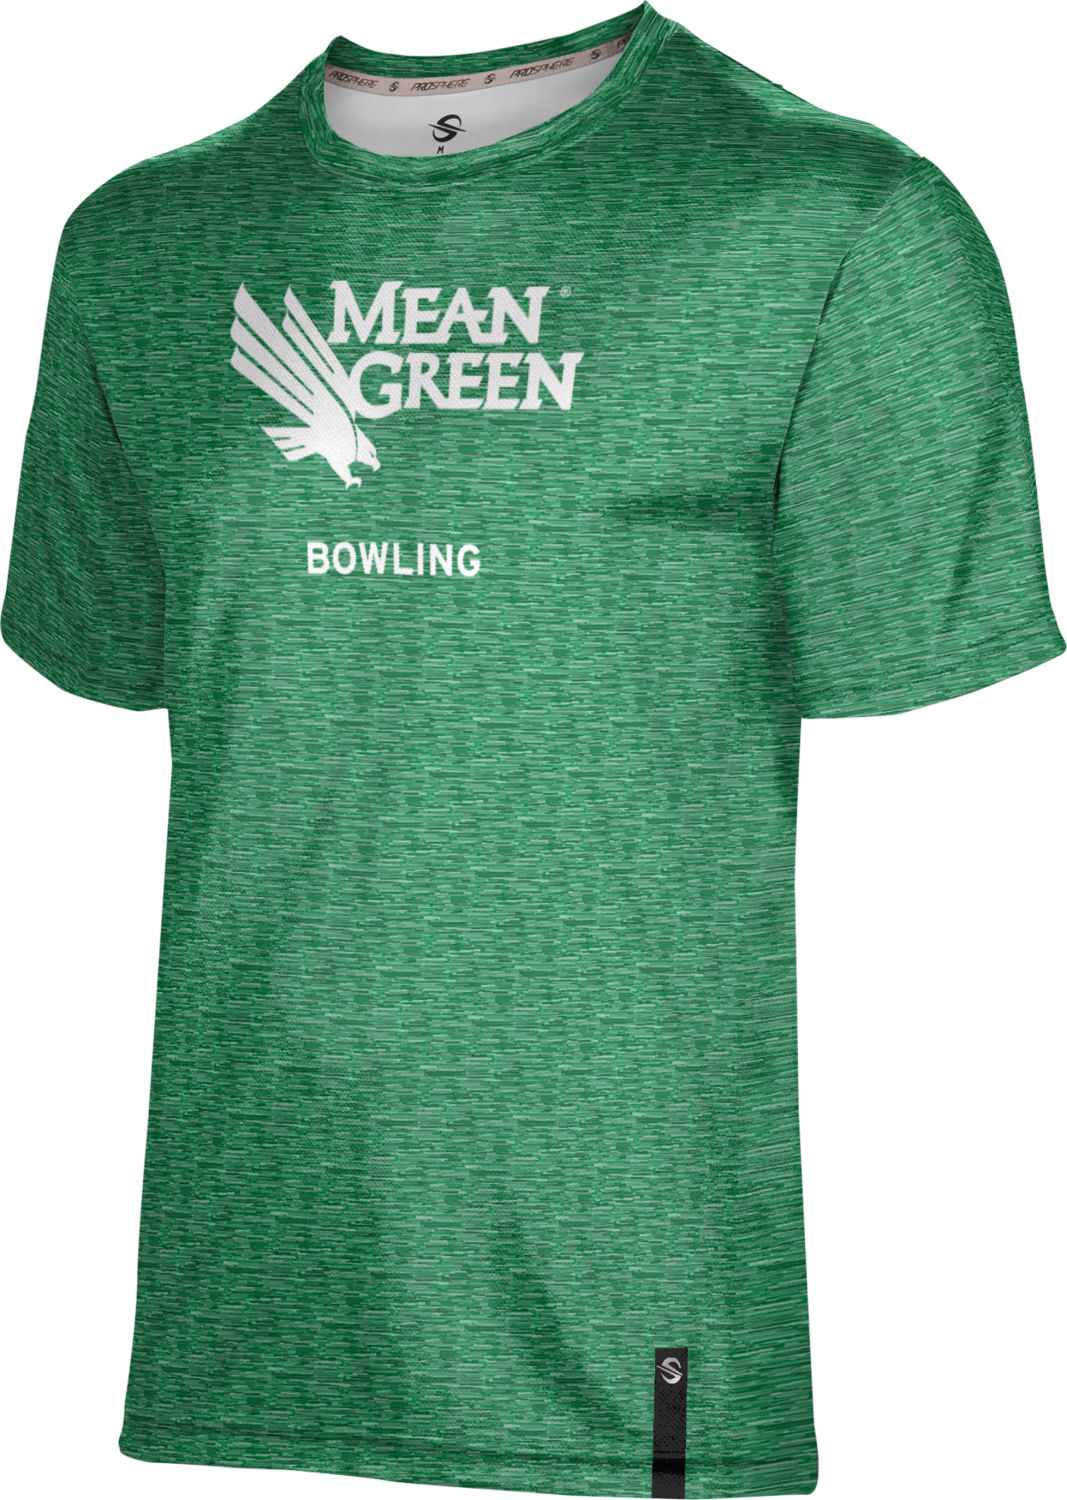 Boys ProSphere Sublimated Tee - Bowling